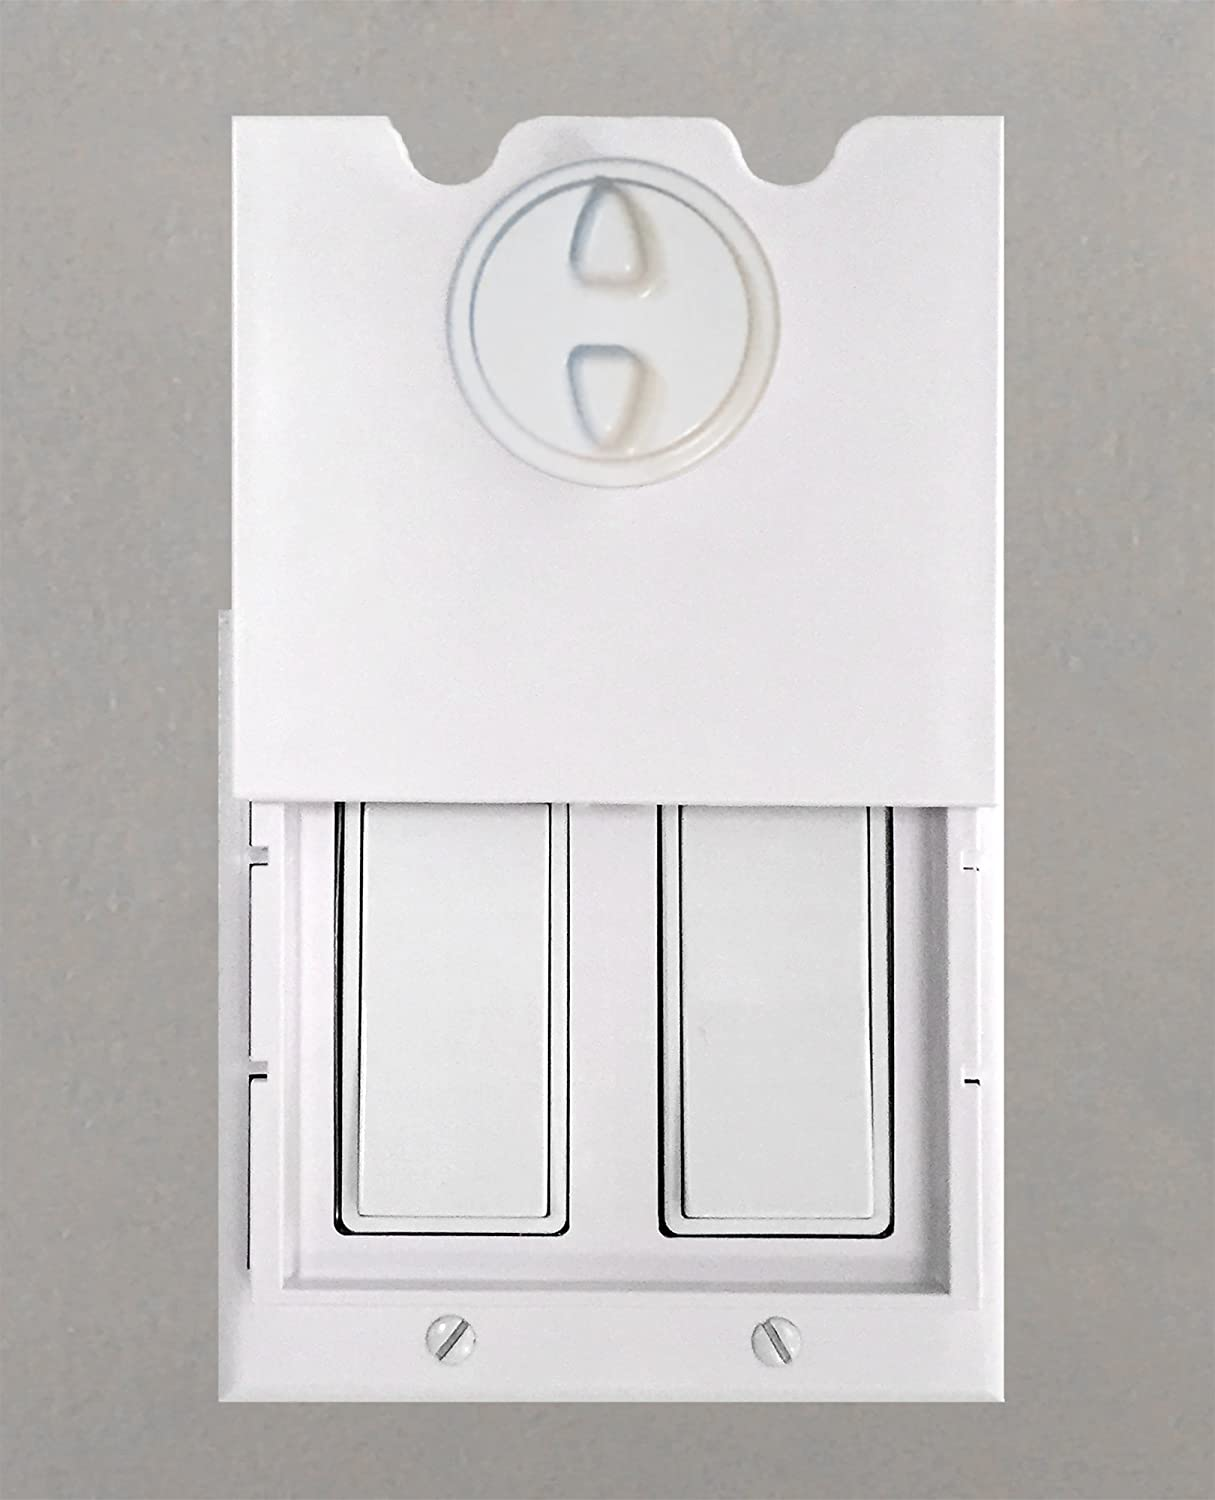 Rocker Light Switch >> Homestar Safety Light Switch Guard And Cover For Double Rocker Switches